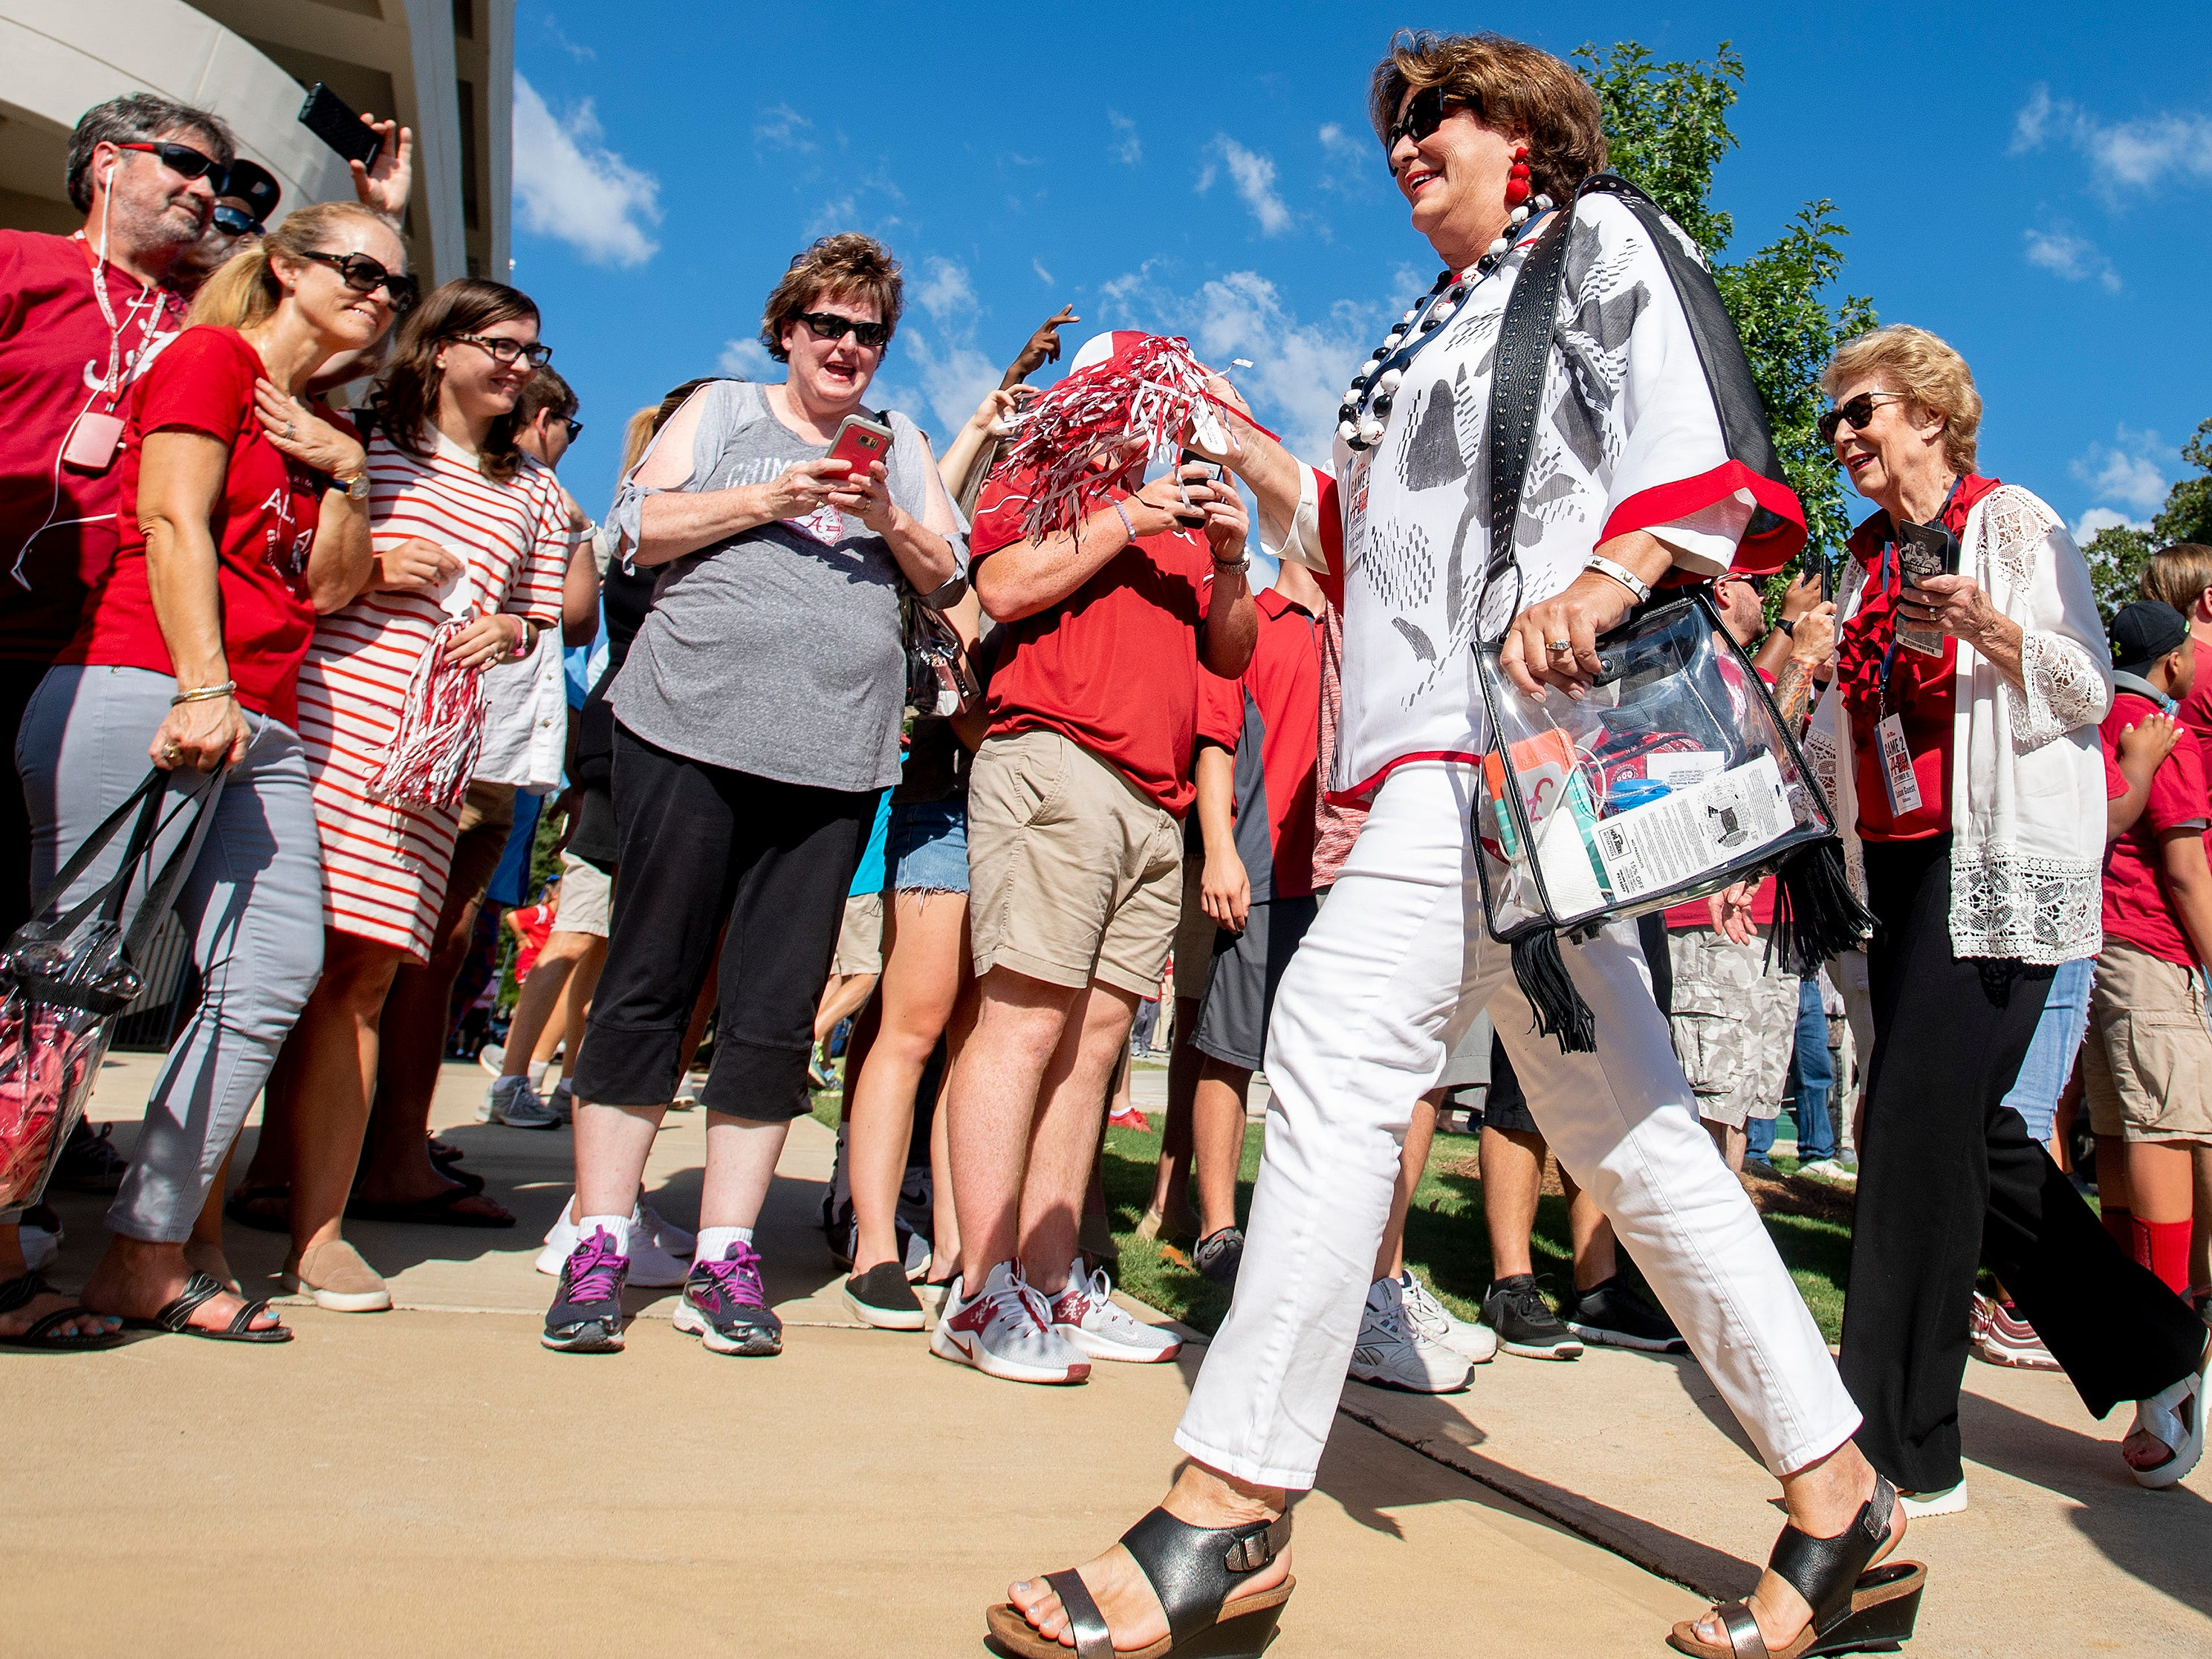 Alabama head coach Nick Saban' wife Terry Saban arrives with the Alabama football team on the Ole Miss campus in Oxford, Ms., on Saturday September 15, 2018.